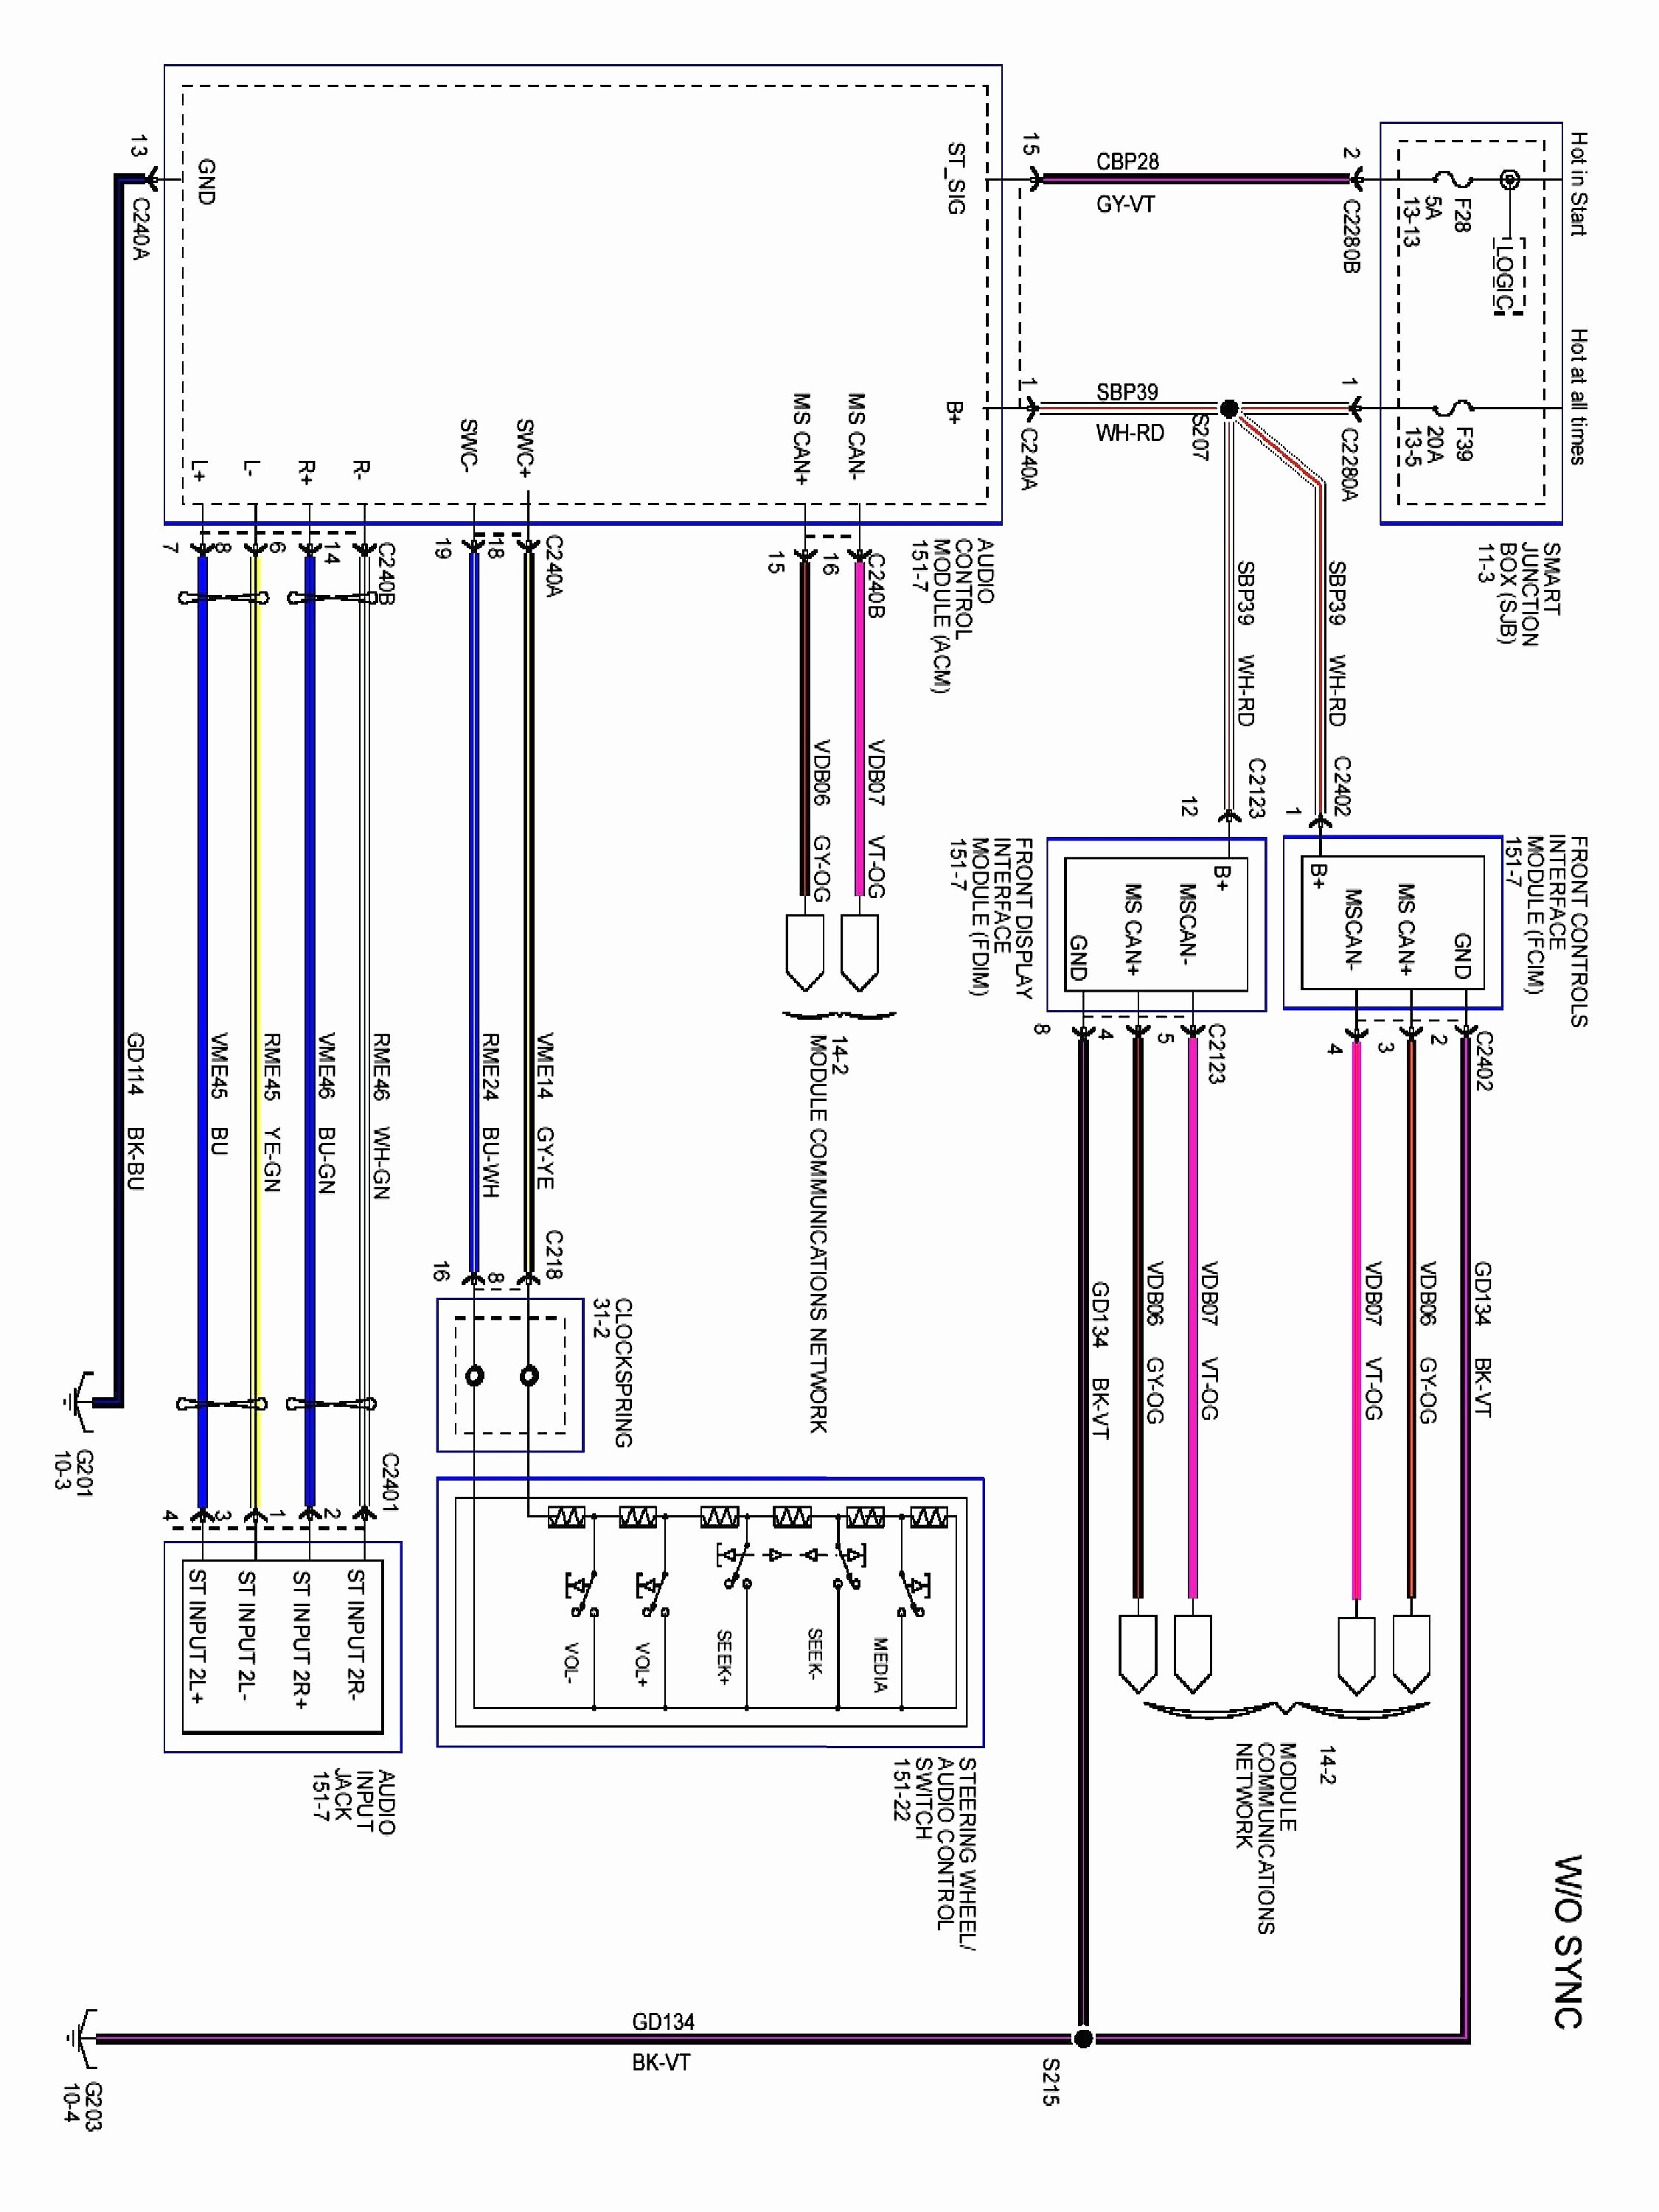 Mercedes Benz Wiring Diagram Car Stereo Wiring Diagram Collection Of Mercedes Benz Wiring Diagram